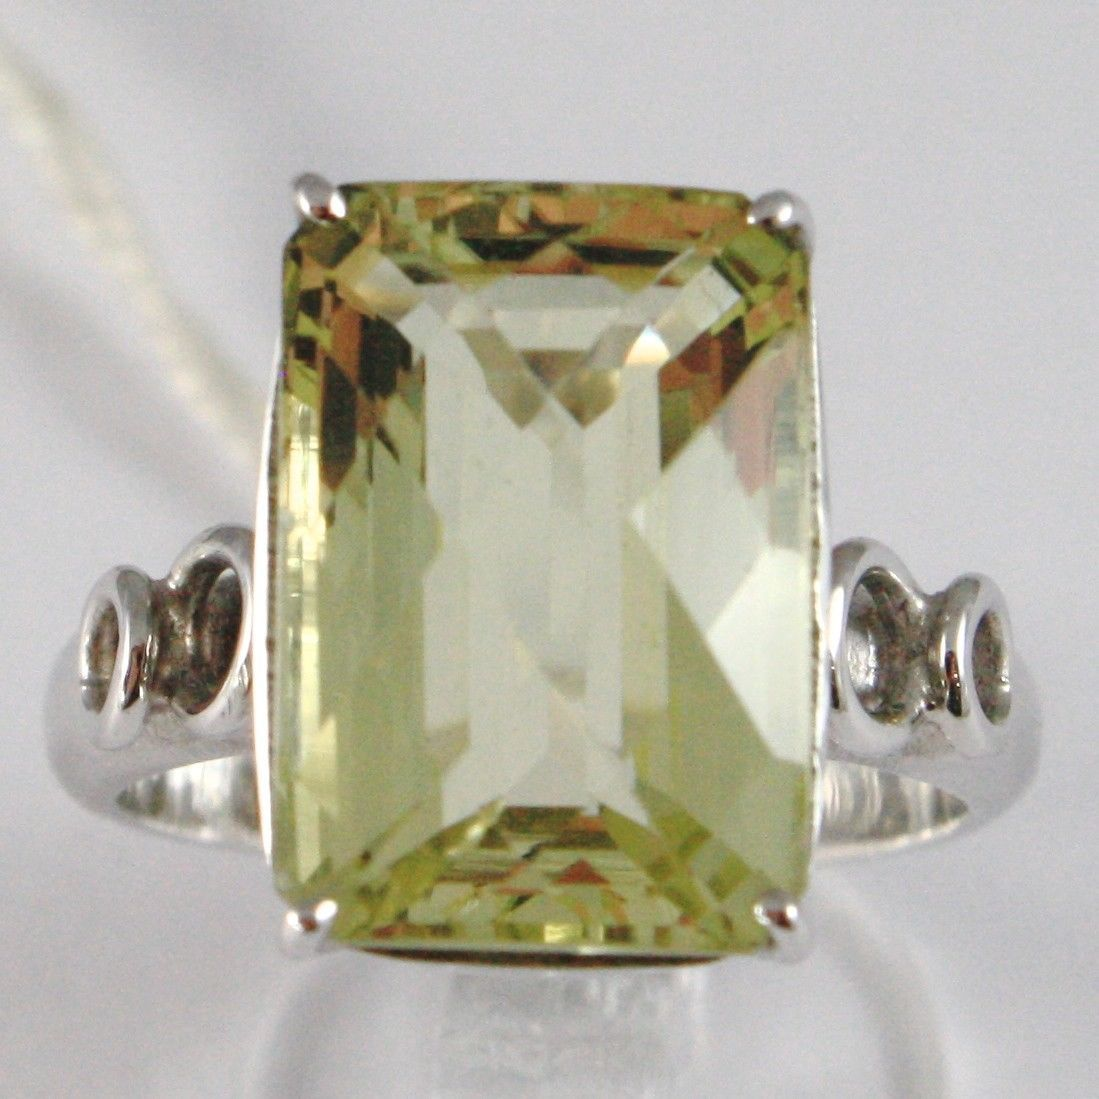 WHITE GOLD RING 750 18K, QUARTZ LEMON CARAT 9.5, CUT CUSHION RECTANGULAR